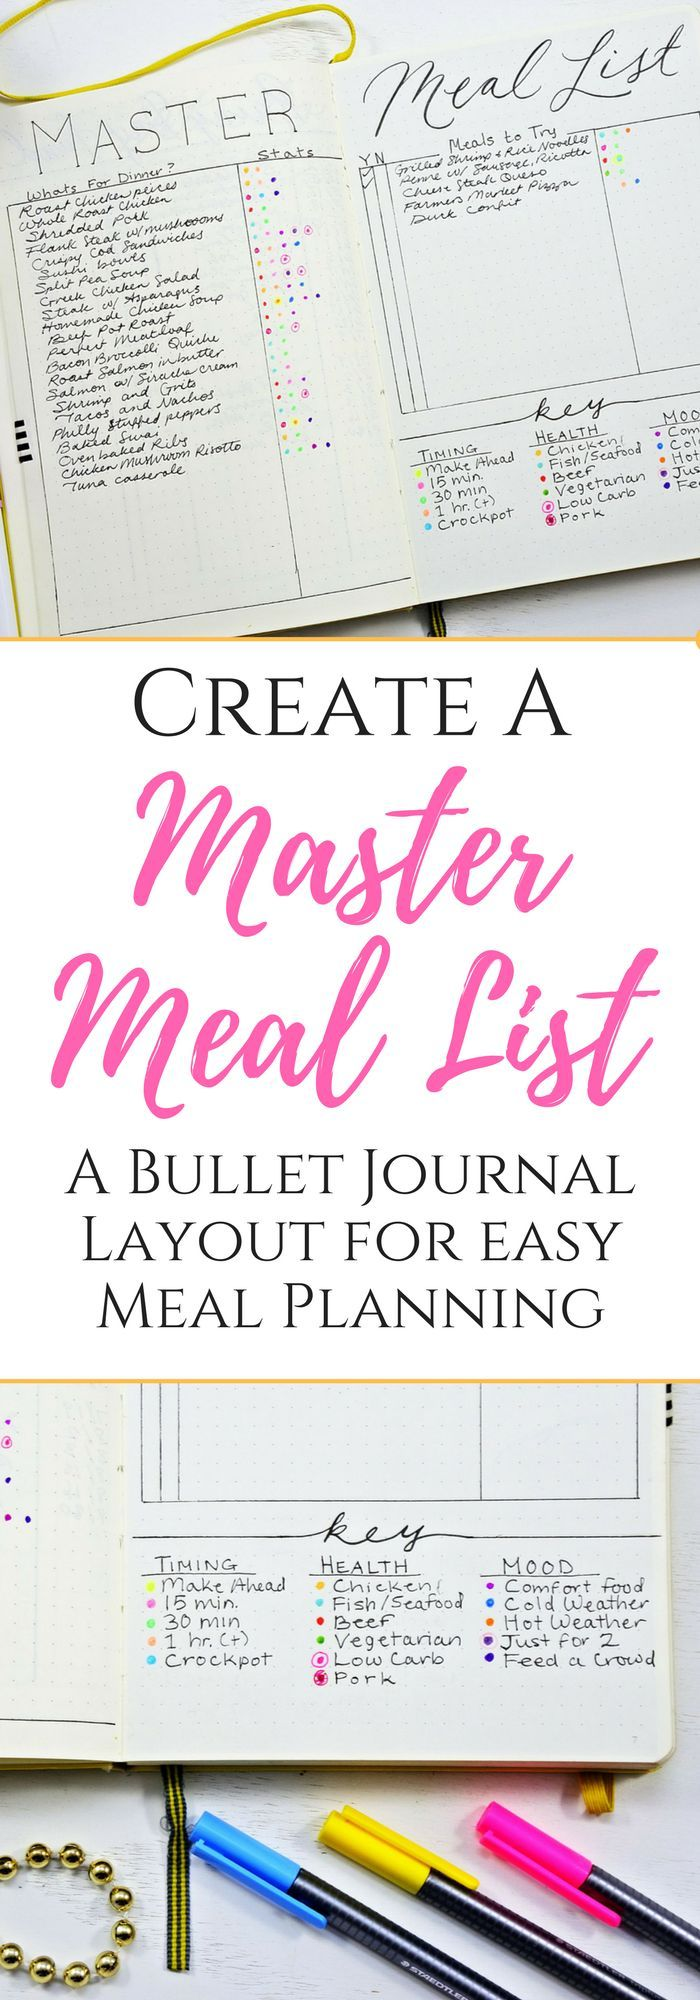 Bullet journal layout for easy meal planning!